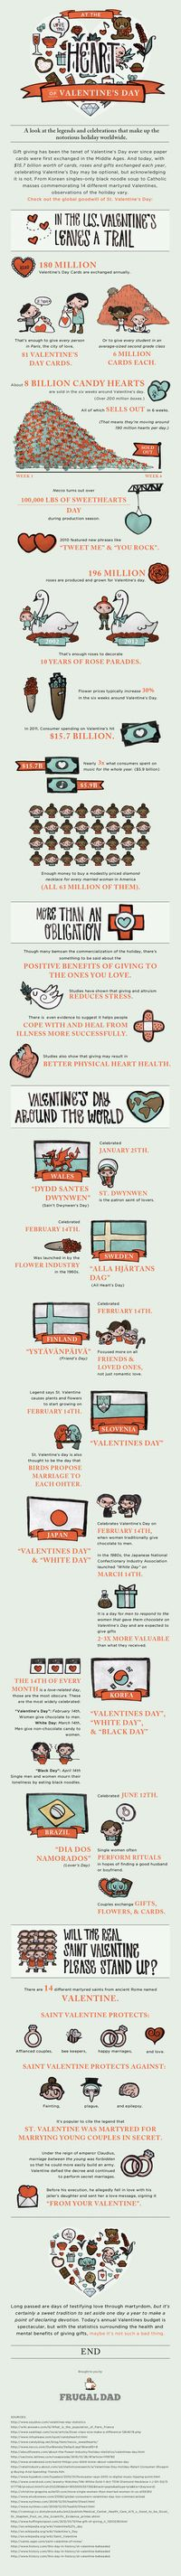 At the Heart of Valentines Day (Infographic)